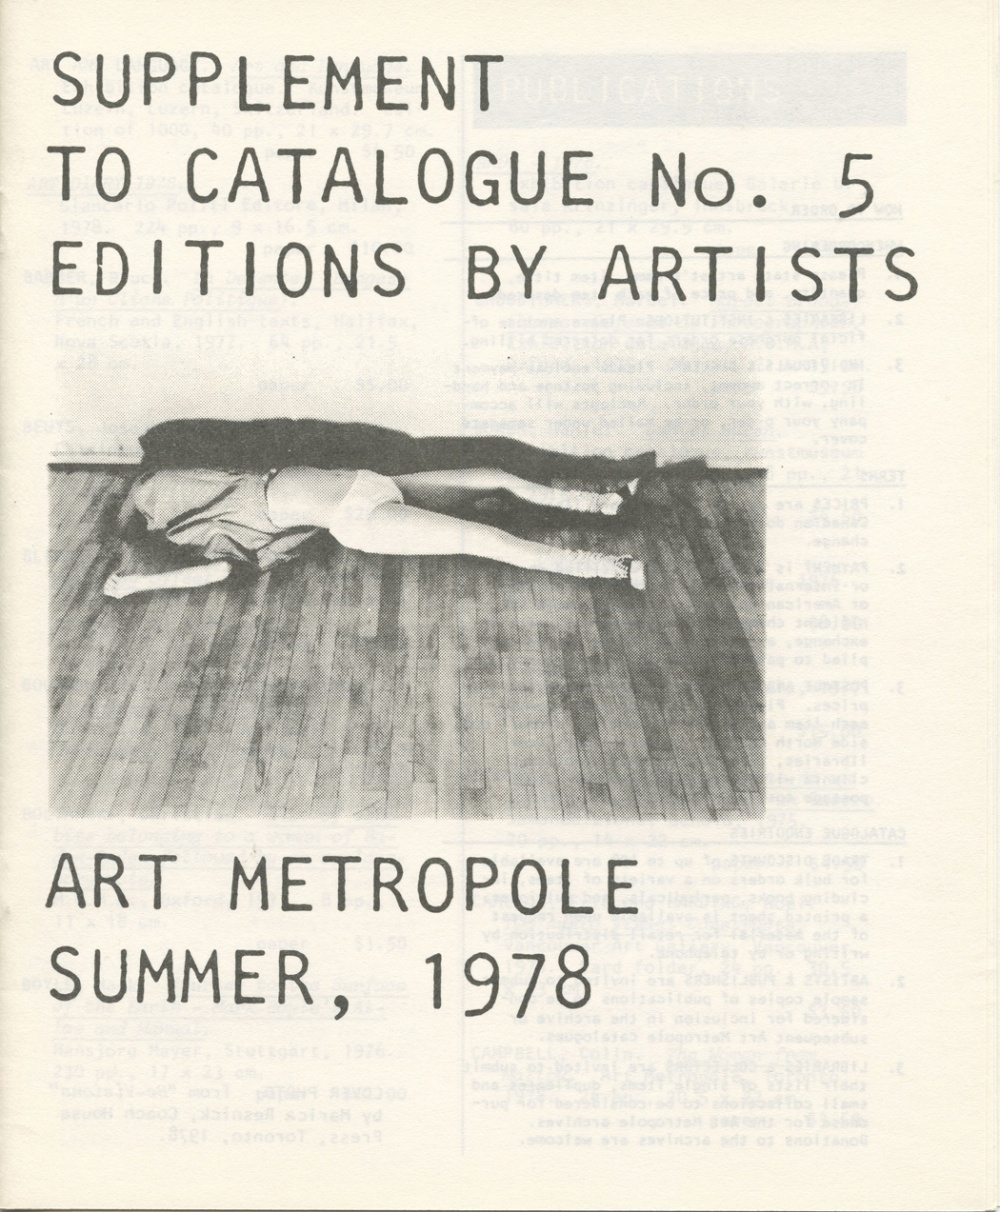 Supplement to Catalogue No. 5. Editions by Artists. Art Metropol